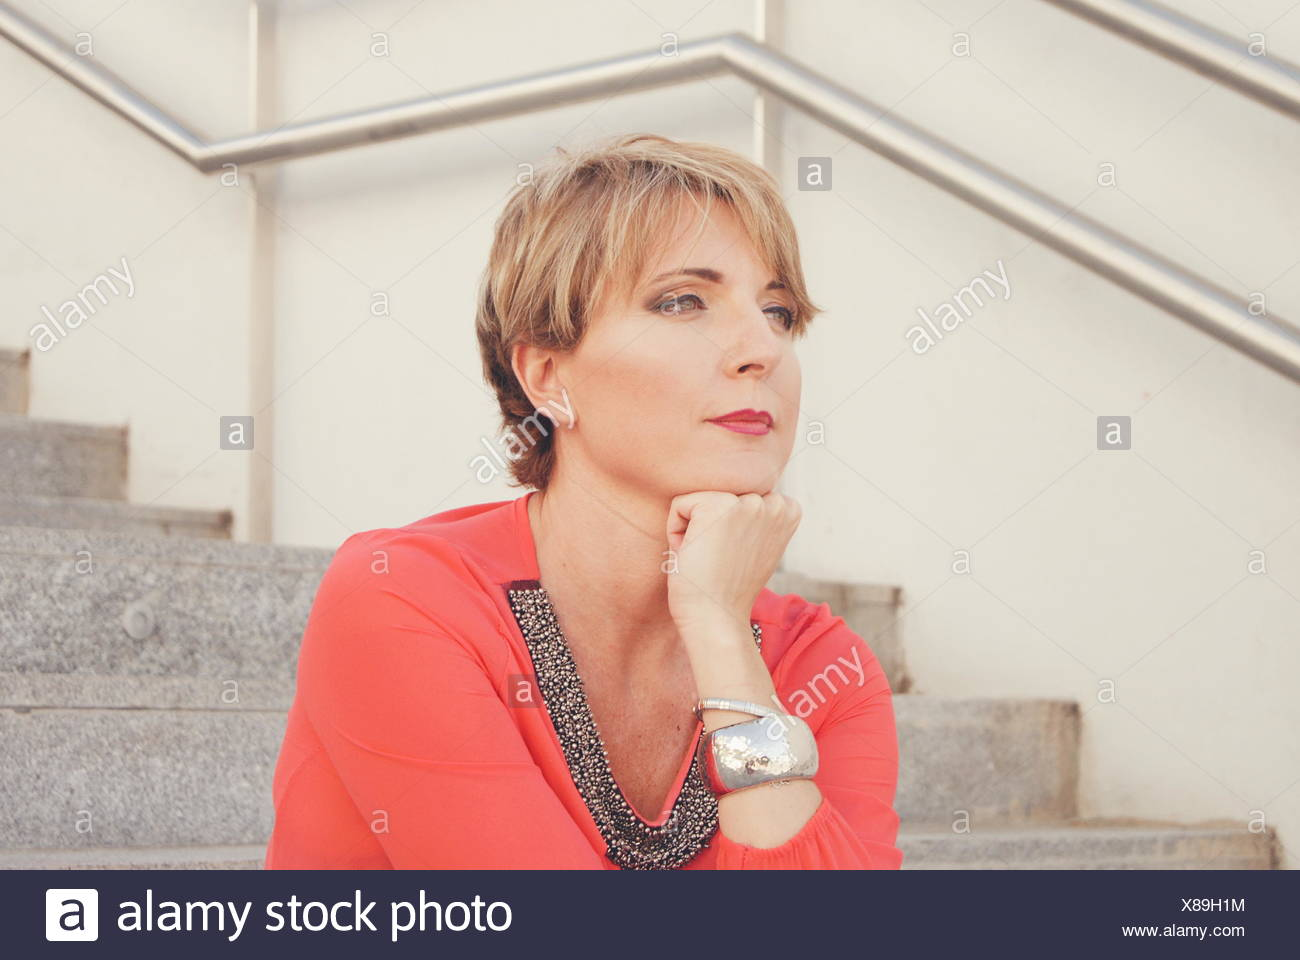 Woman sitting on stairs with head on her chin - Stock Image